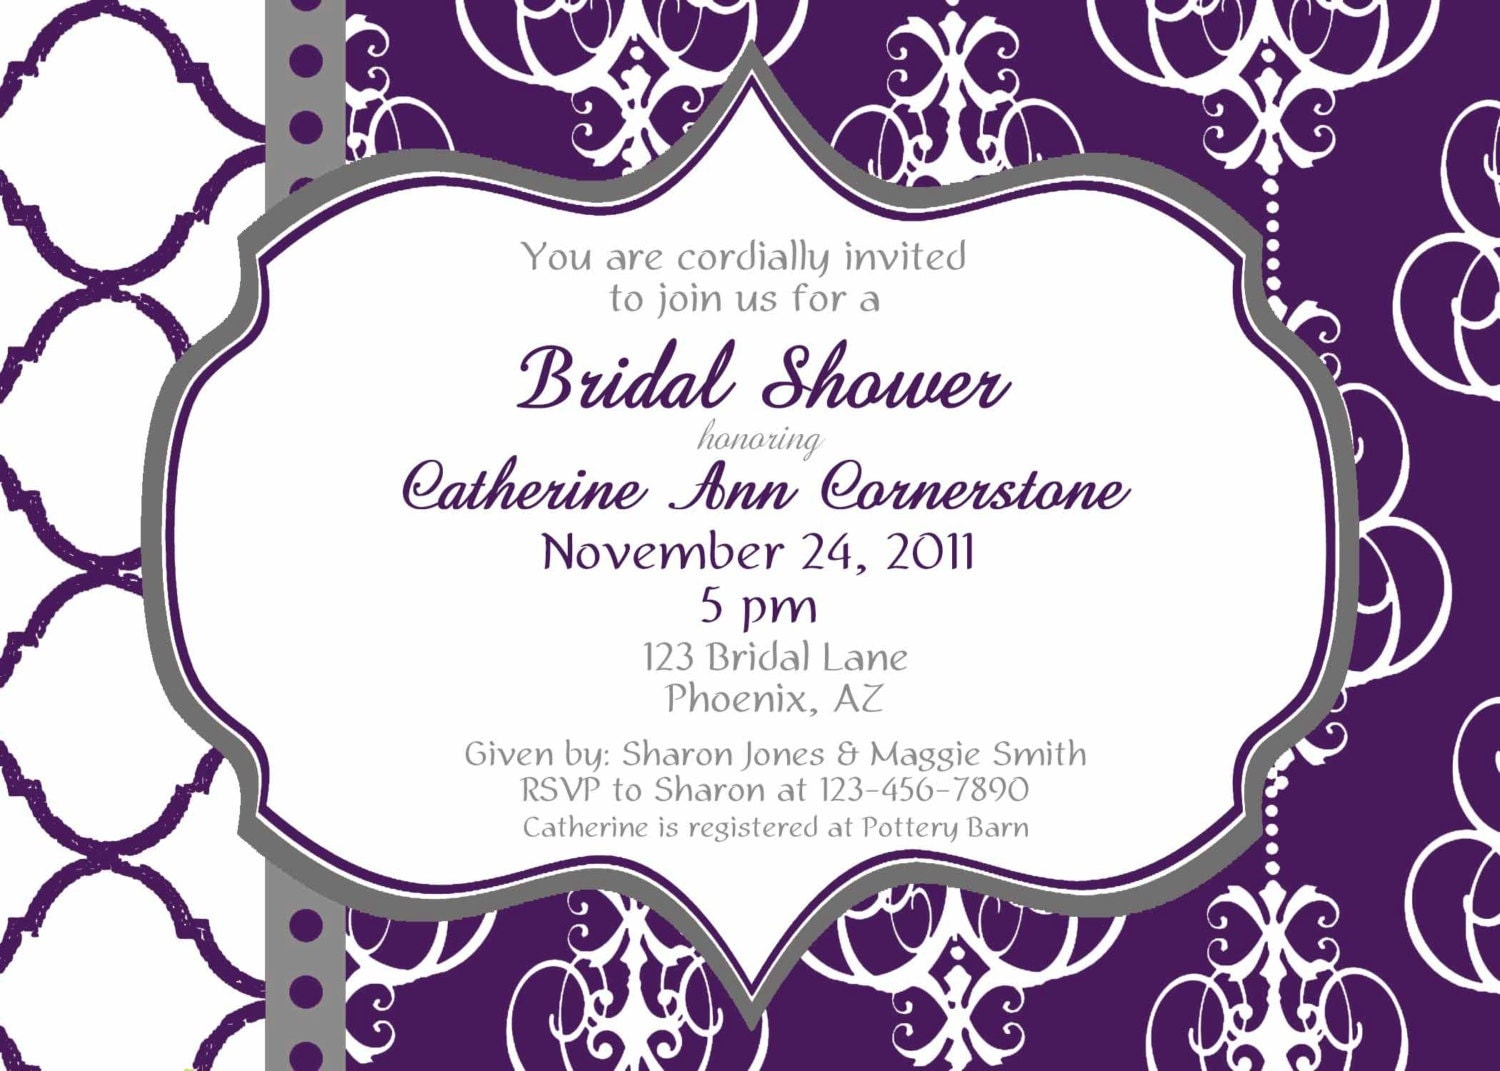 Wedding Shower Invitations Free: Purple Bridal Shower Invitation Printable Party By